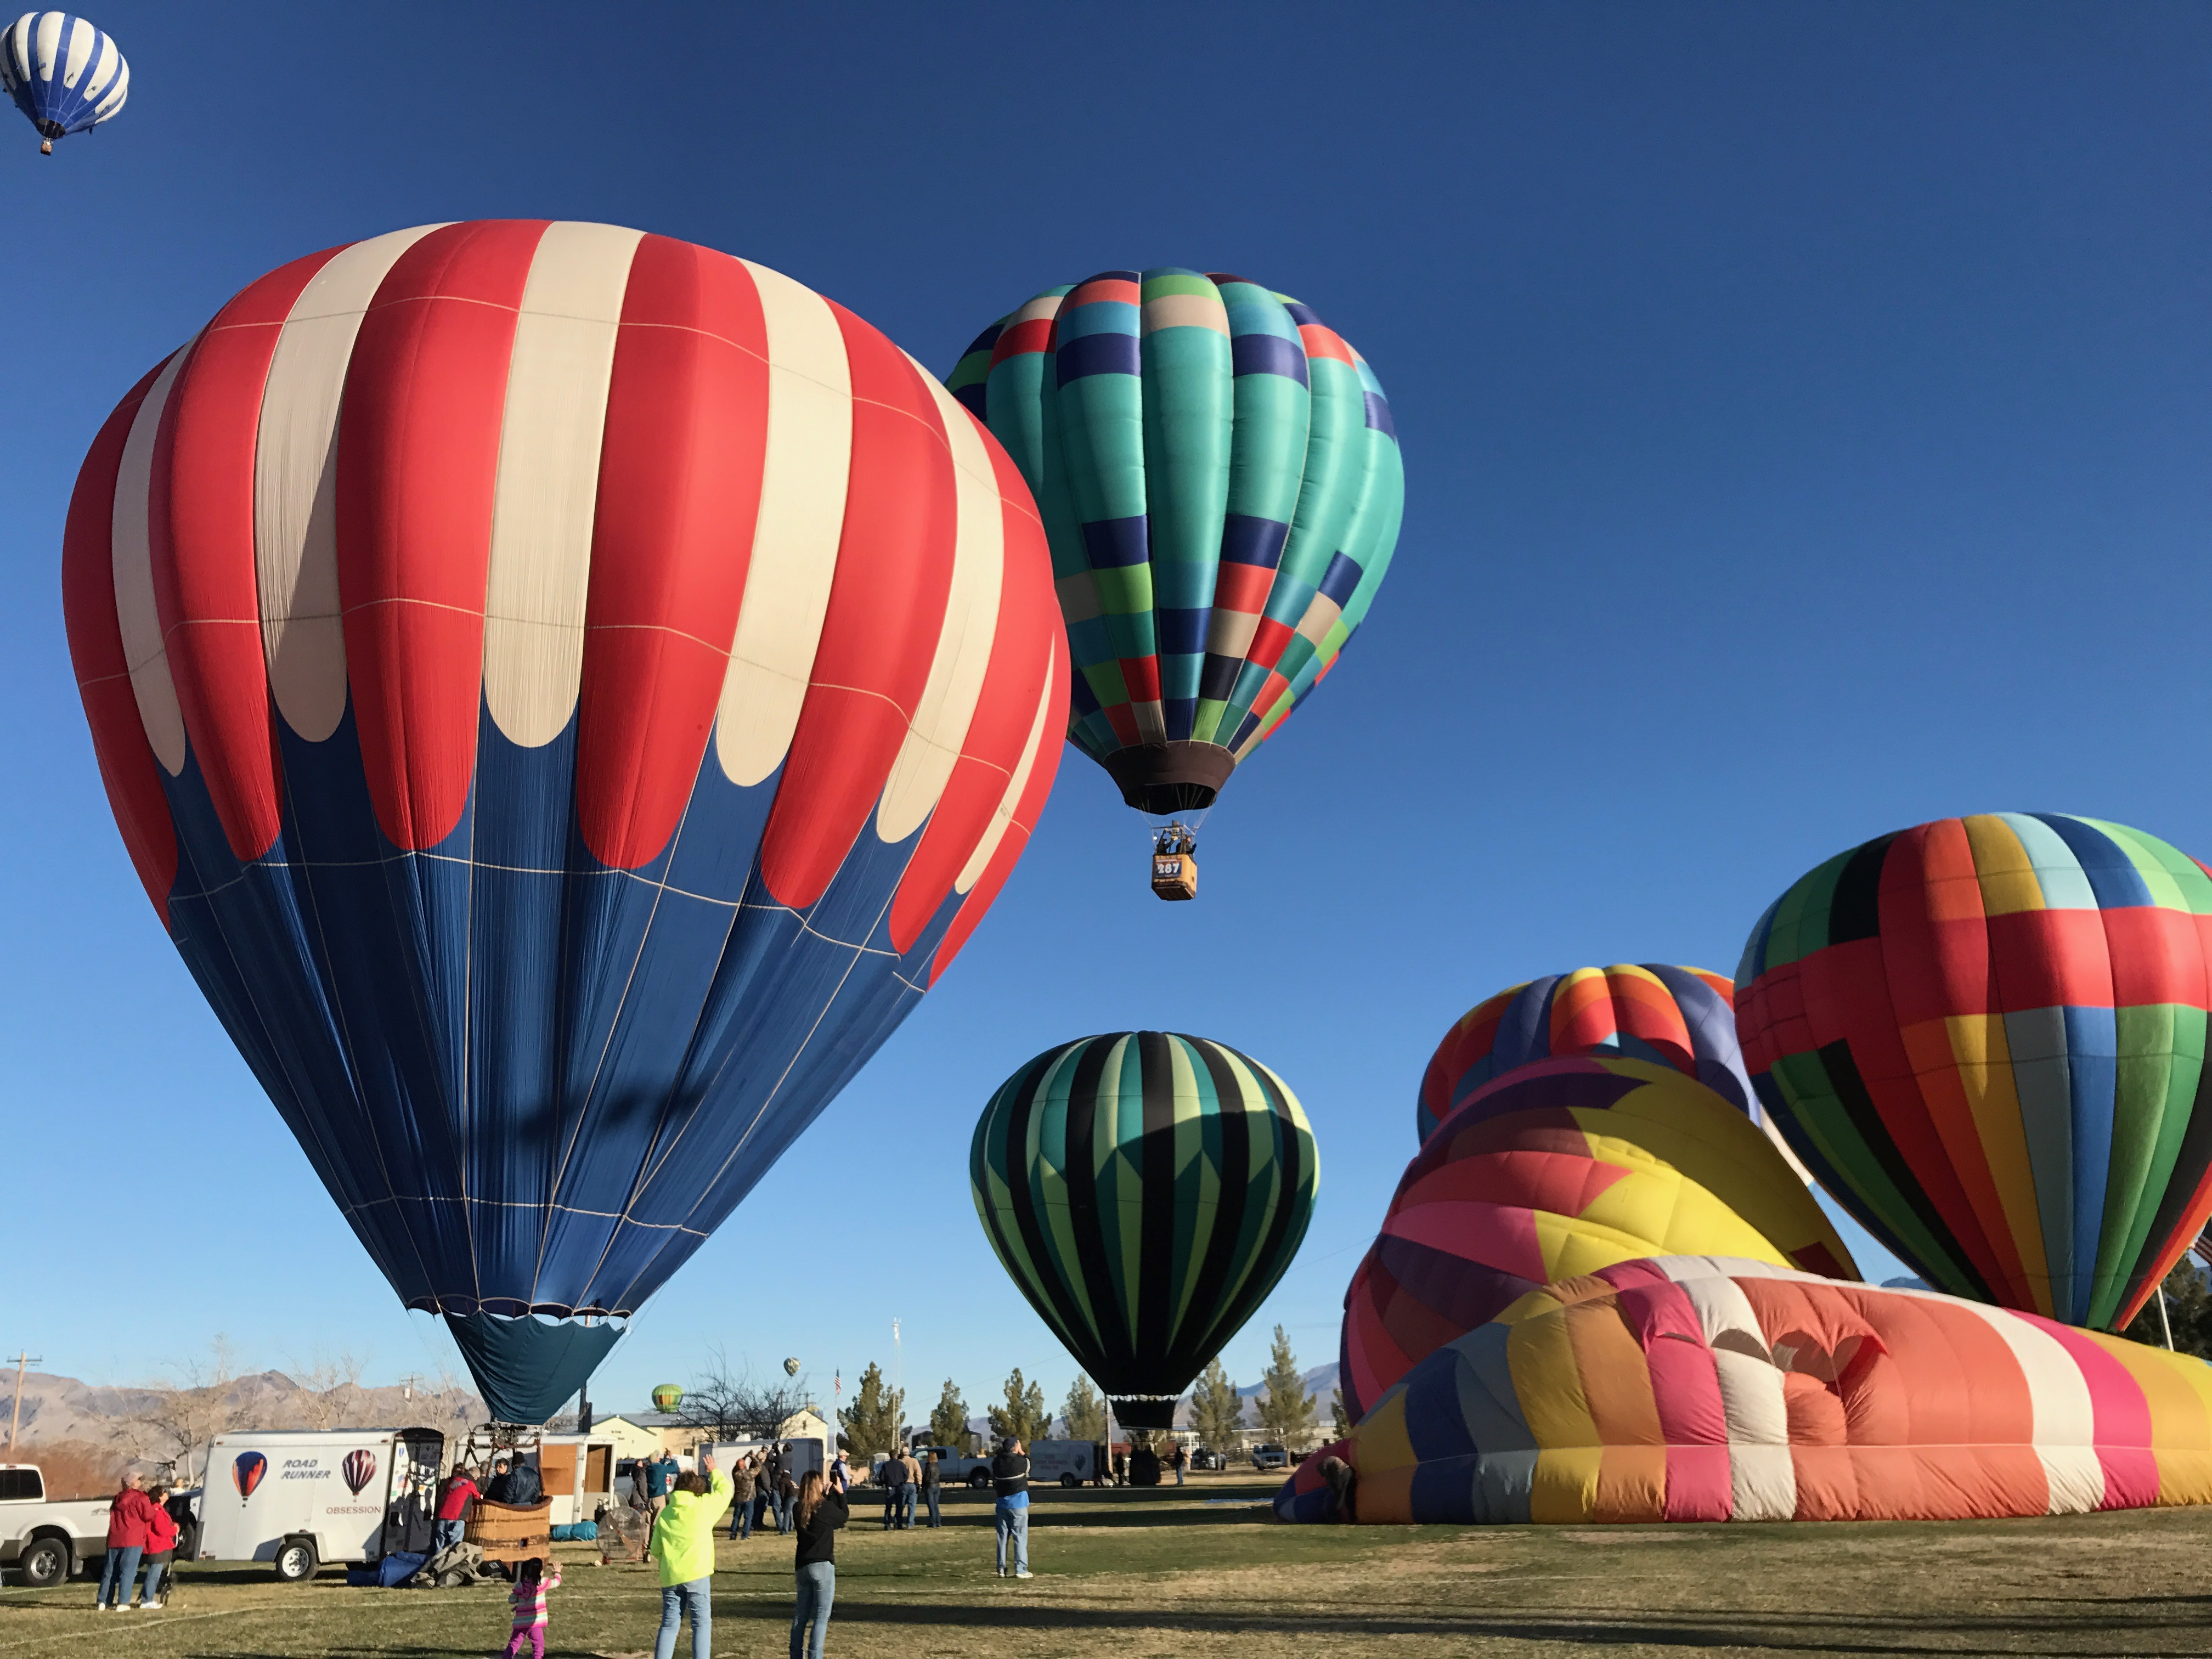 Many air balloons on the ground for the Pahrump Balloon Festival